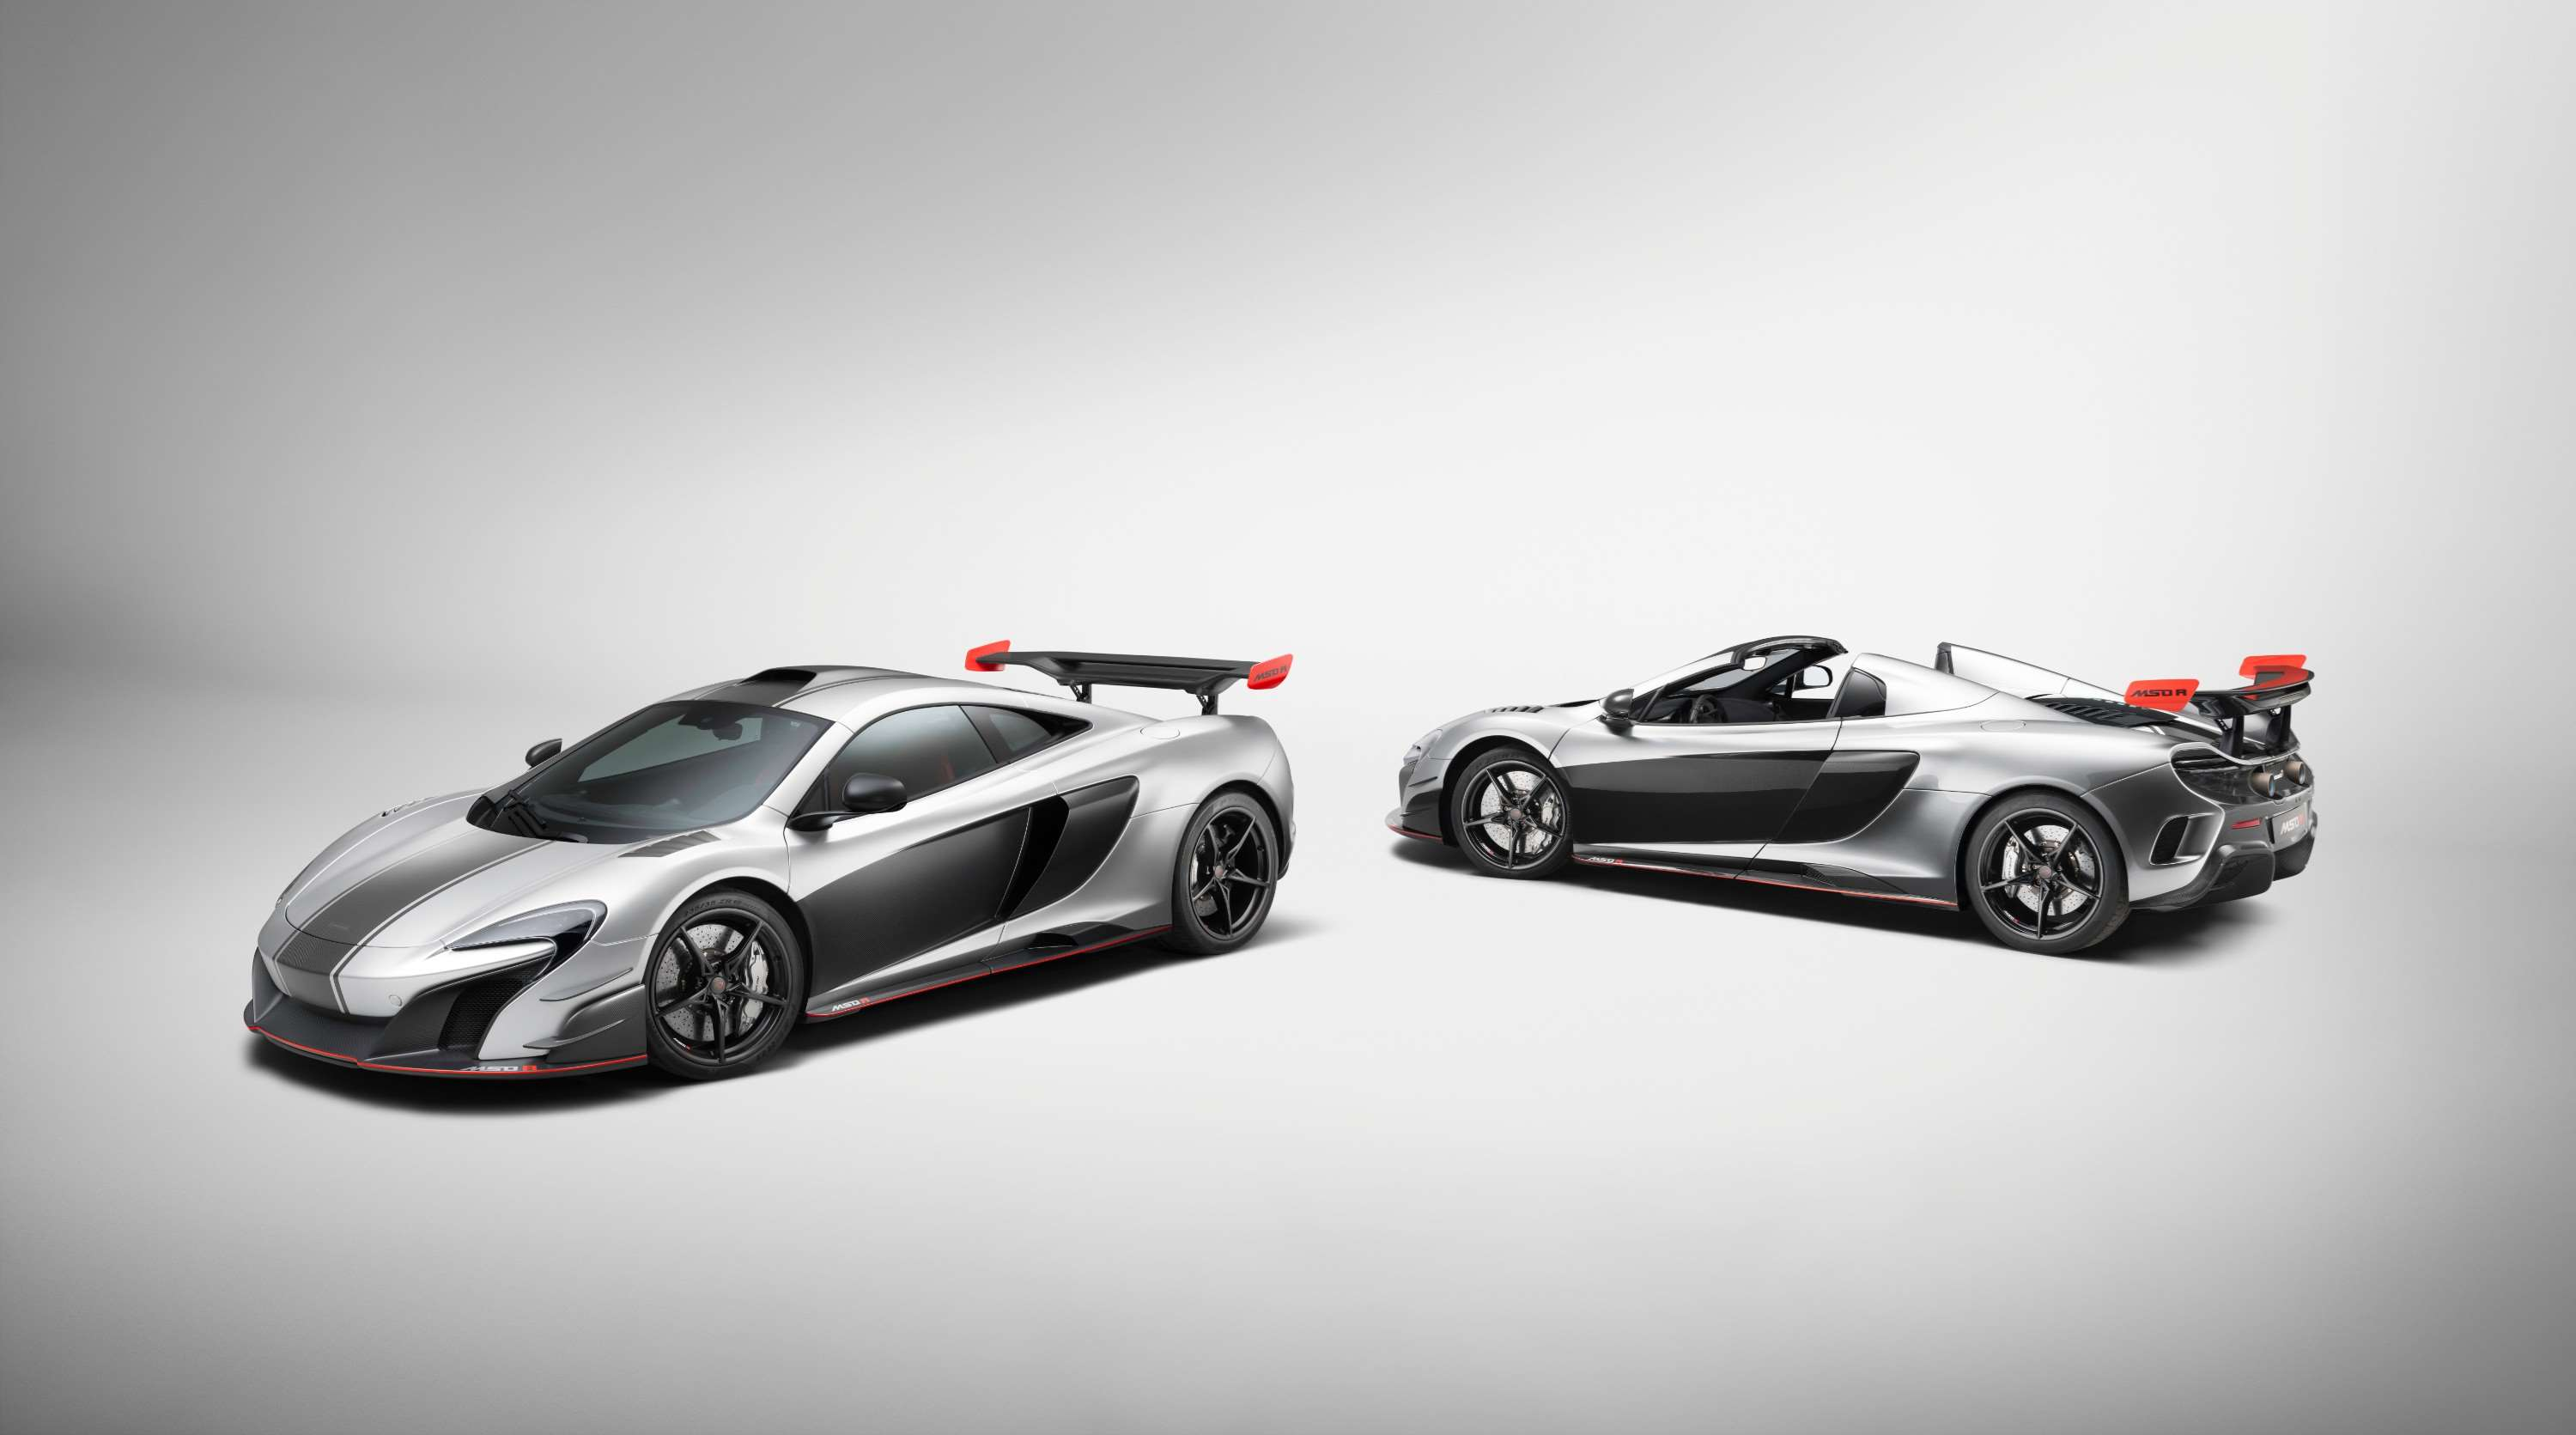 McLaren creates two bespoke MSO R supercars""